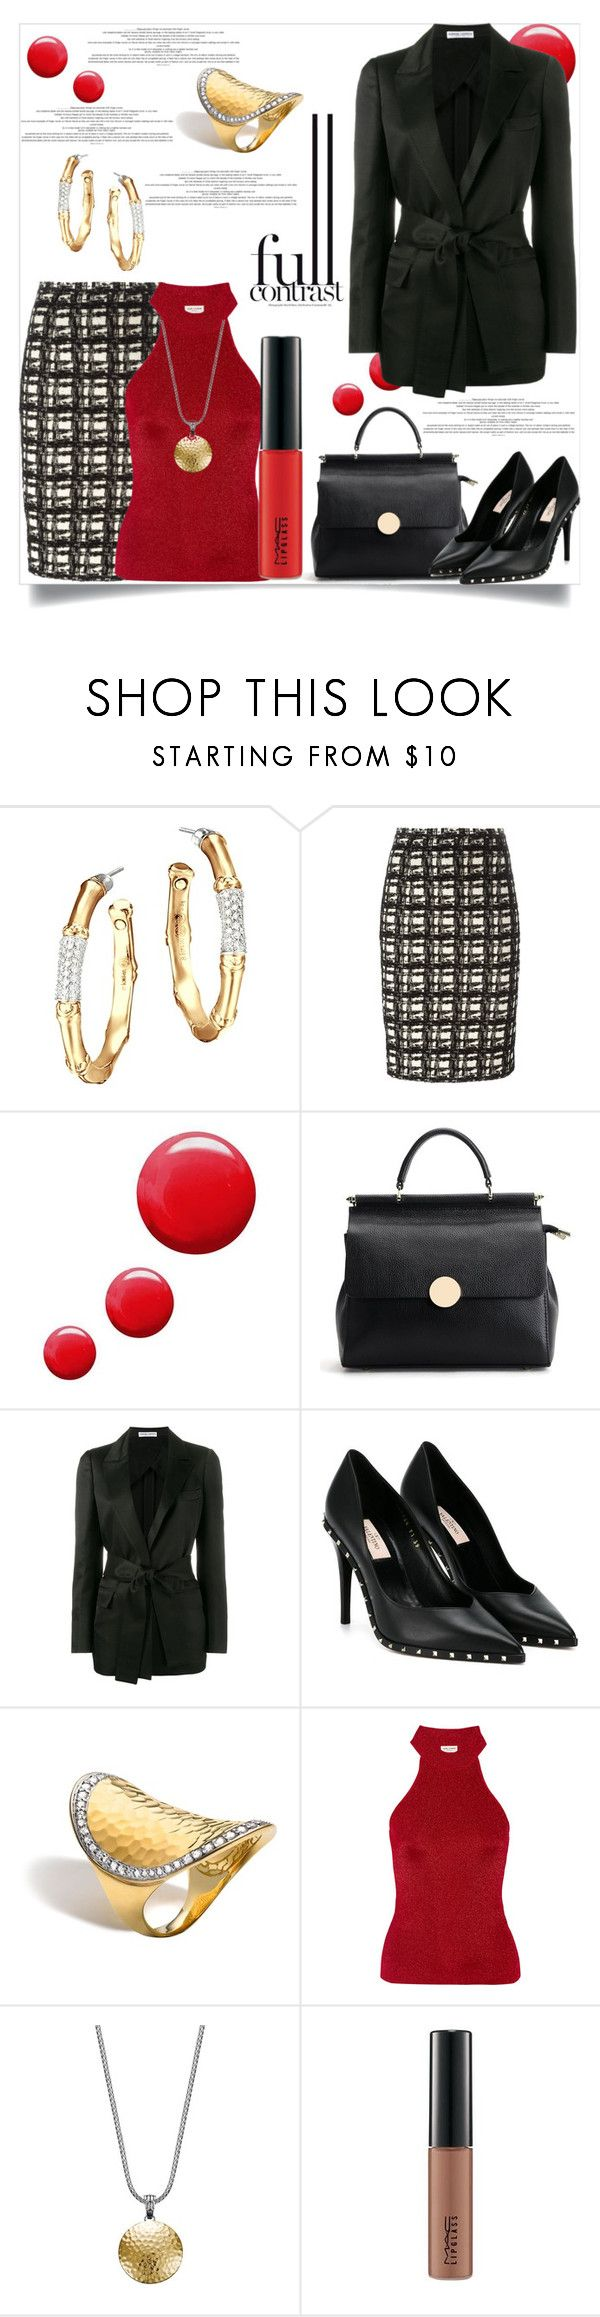 """Full Contrast"" by helenaymangual ❤ liked on Polyvore featuring John Hardy, Eggs, Topshop, Barbara Casasola, Valentino, Yves Saint Laurent and MAC Cosmetics"